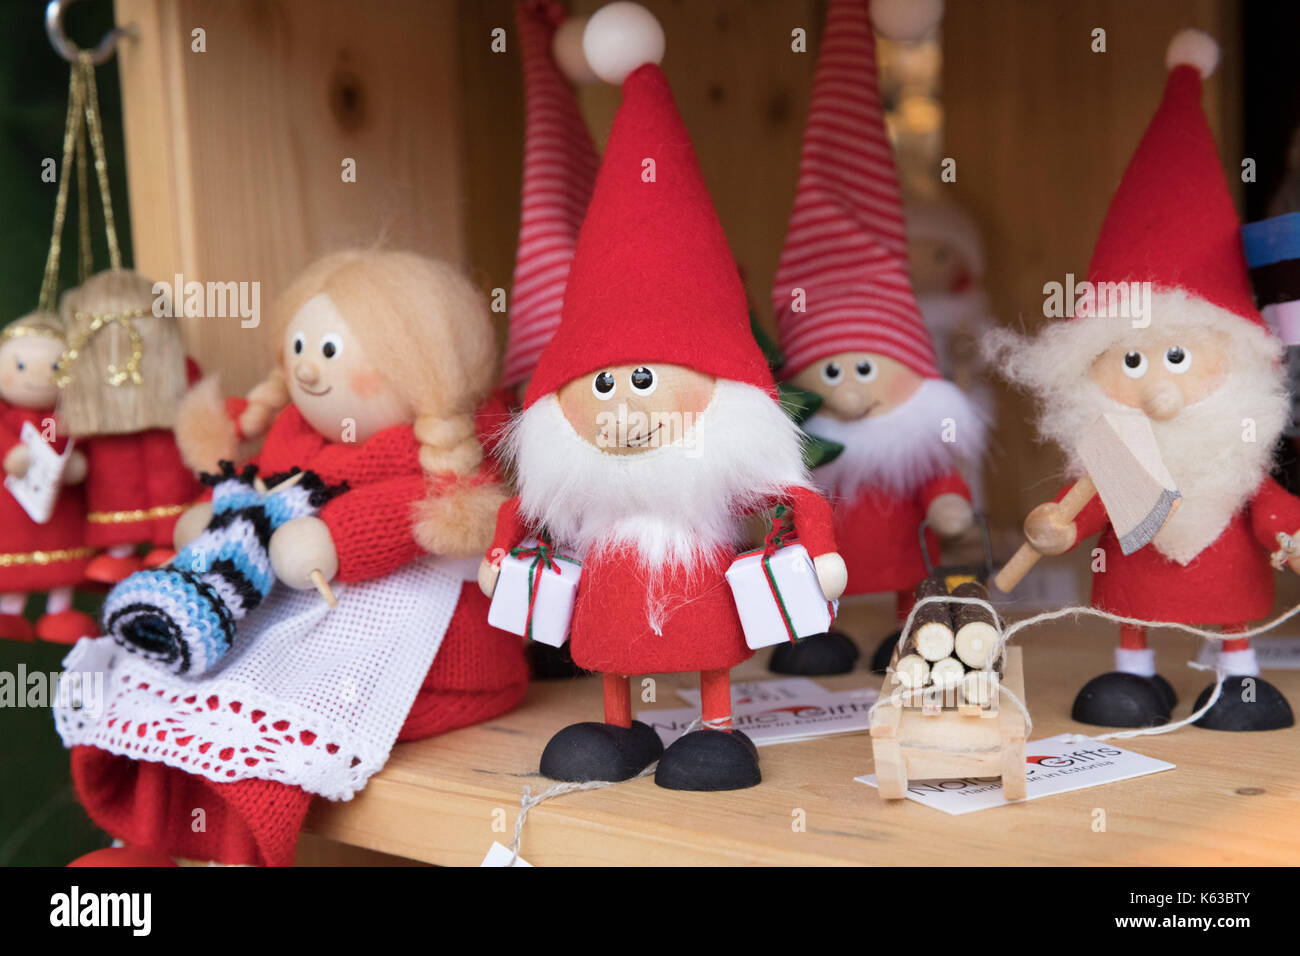 Elf Decoration High Resolution Stock Photography And Images Alamy